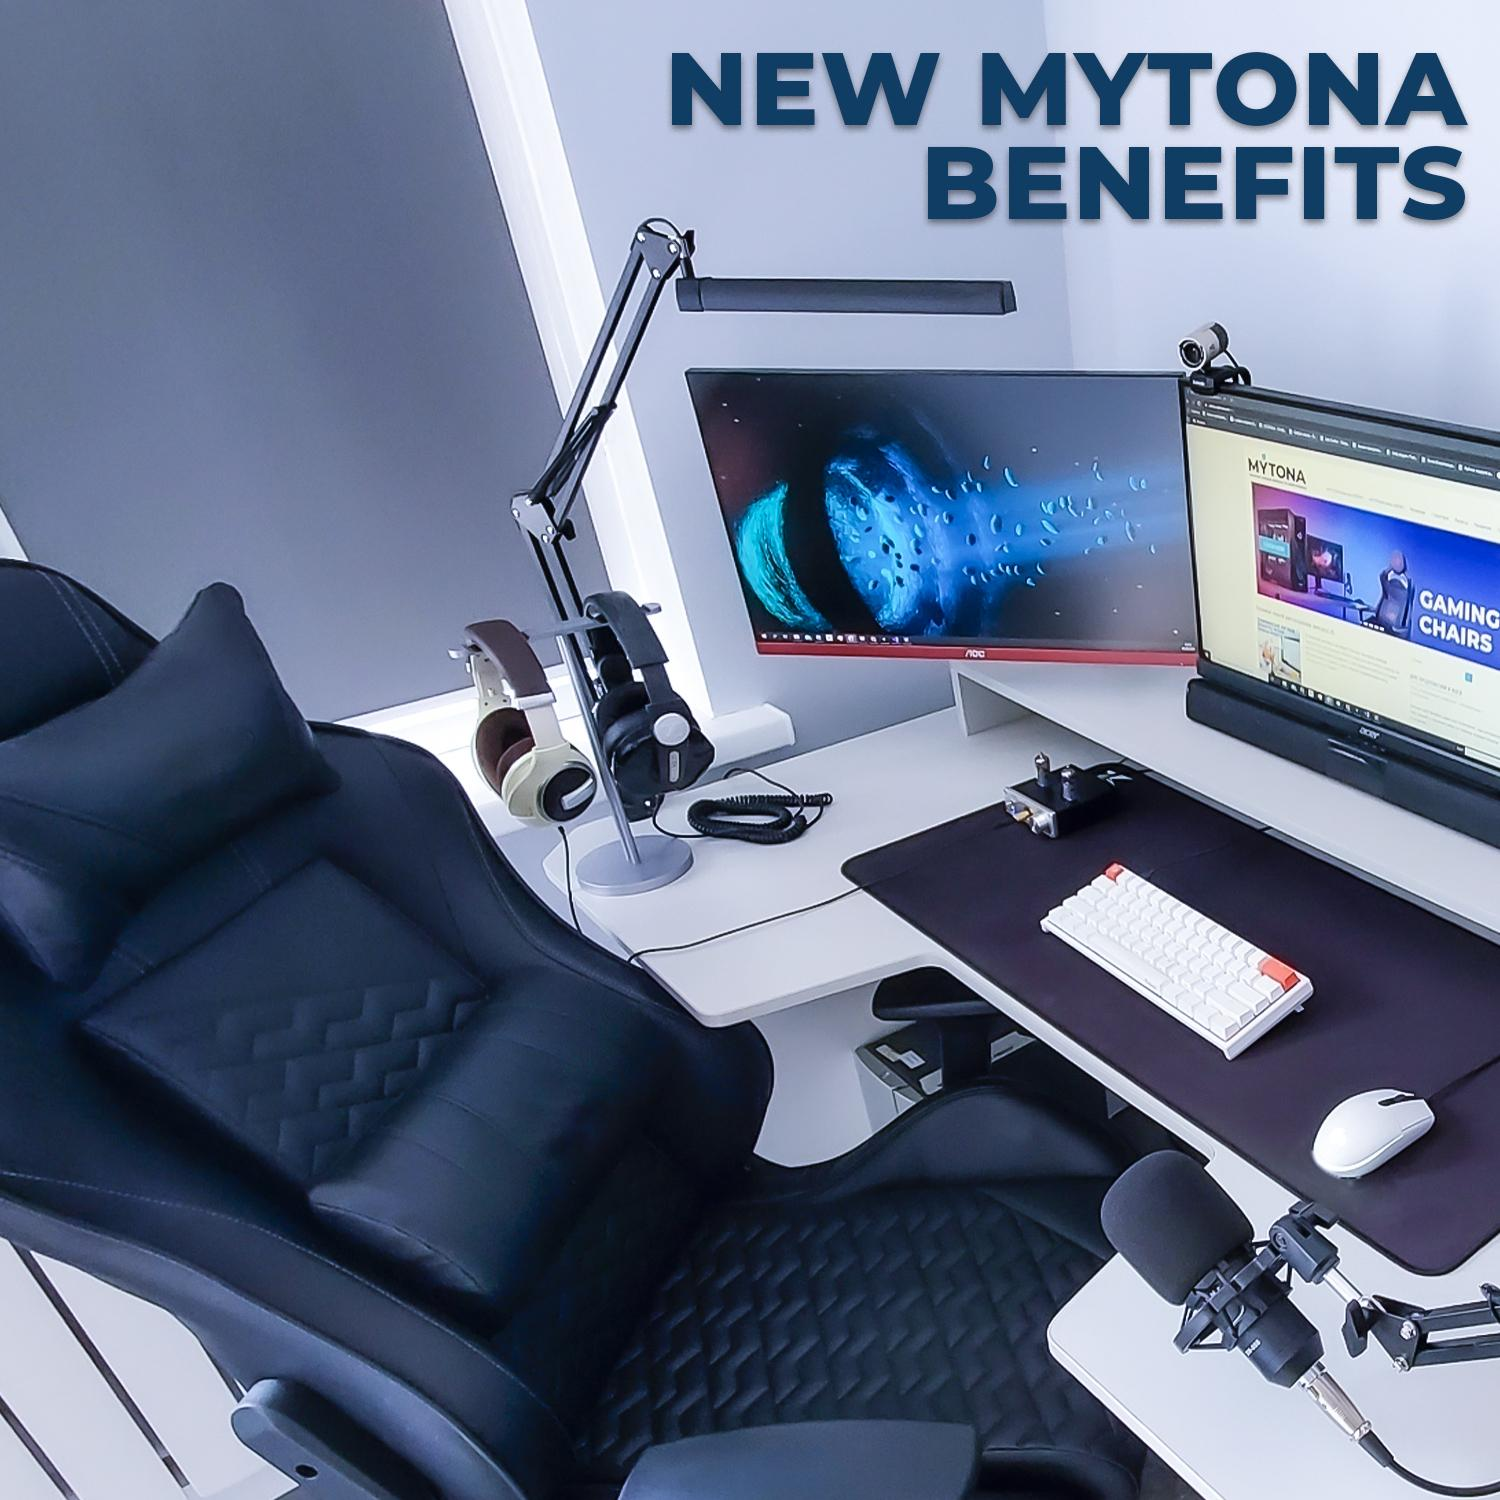 MYTONA Perks: Benefit Upgrades for Mytonians in Our Overseas Offices